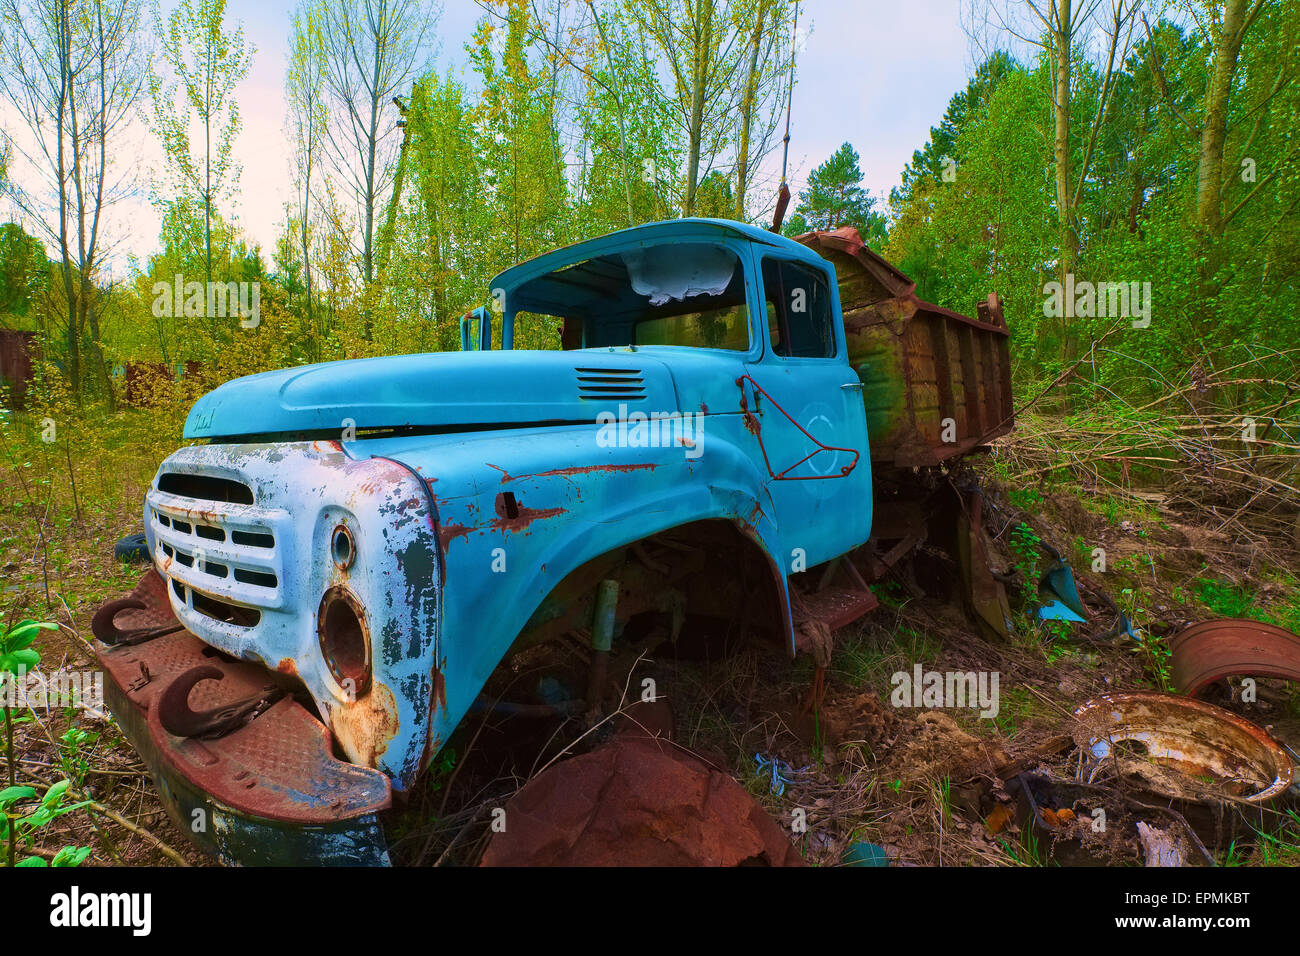 Junk yard - Stock Image